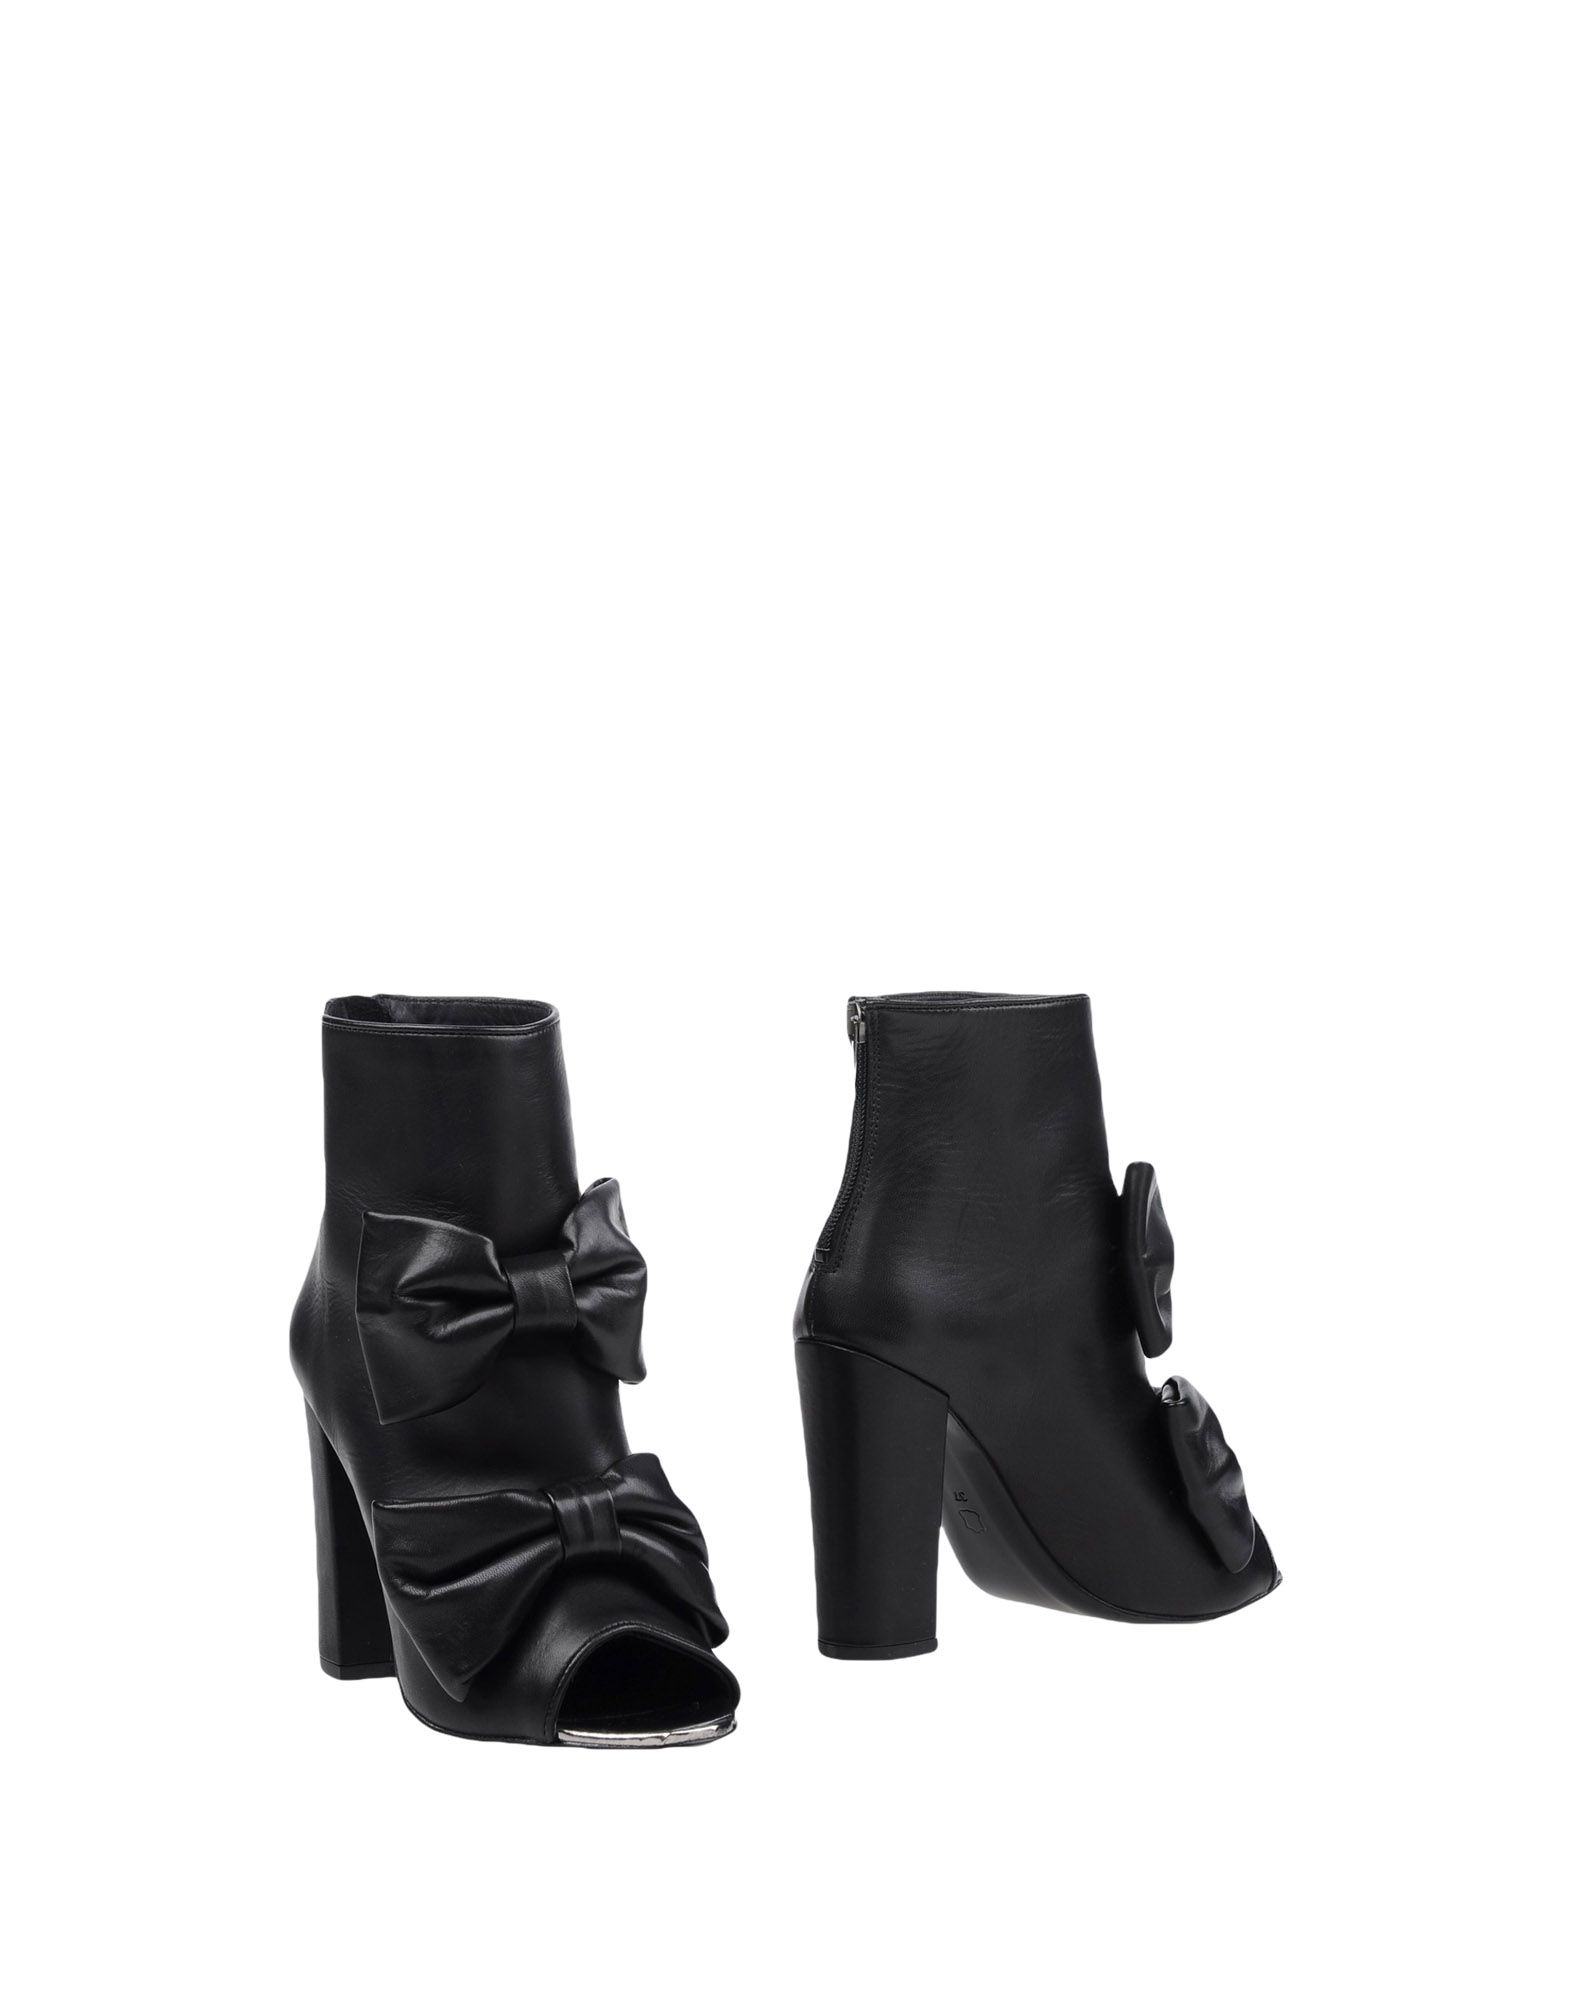 Bottine Morobē Femme - Bottines Morobē sur